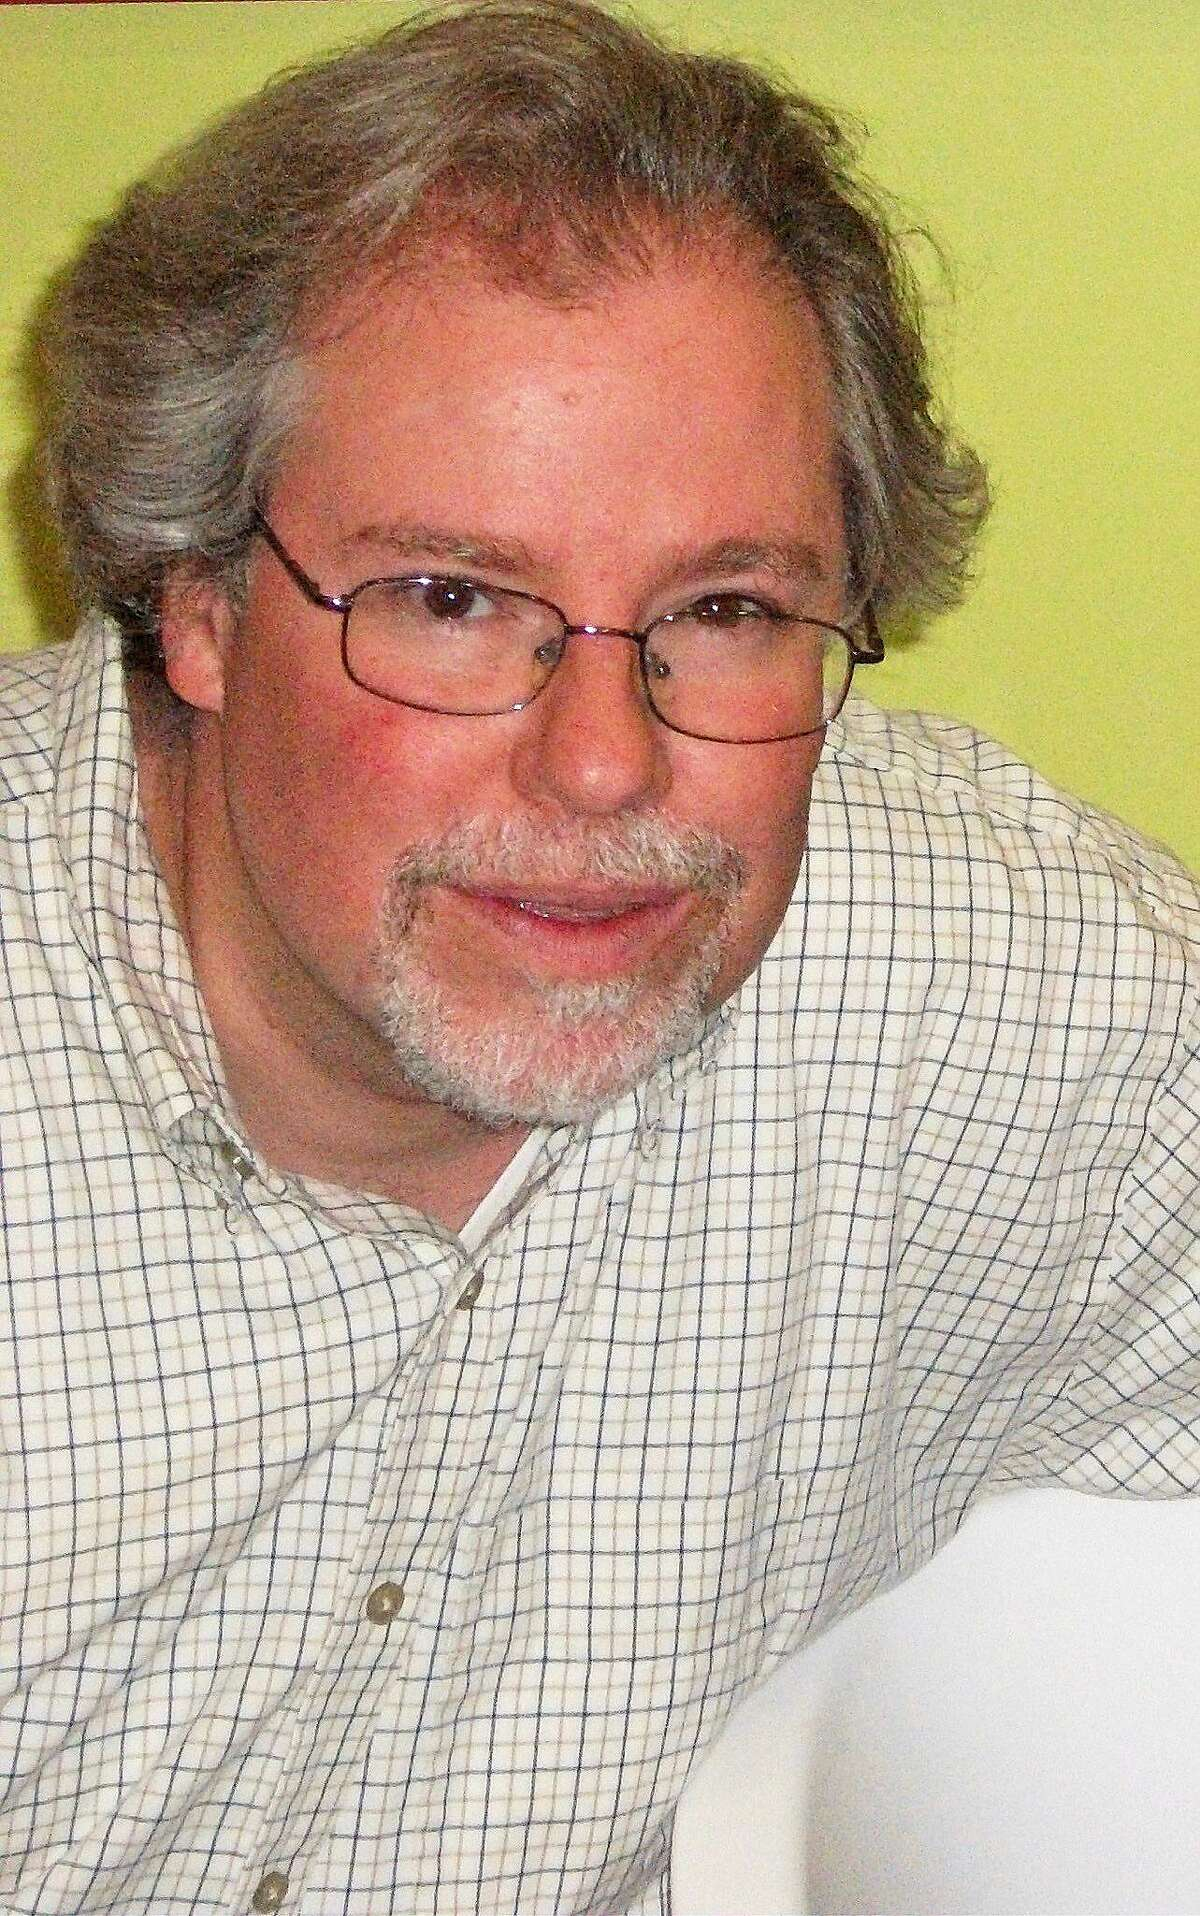 Professor Robert O'Brien has been teaching history at the Cy-Fair campus of Lone Star College since 2003.